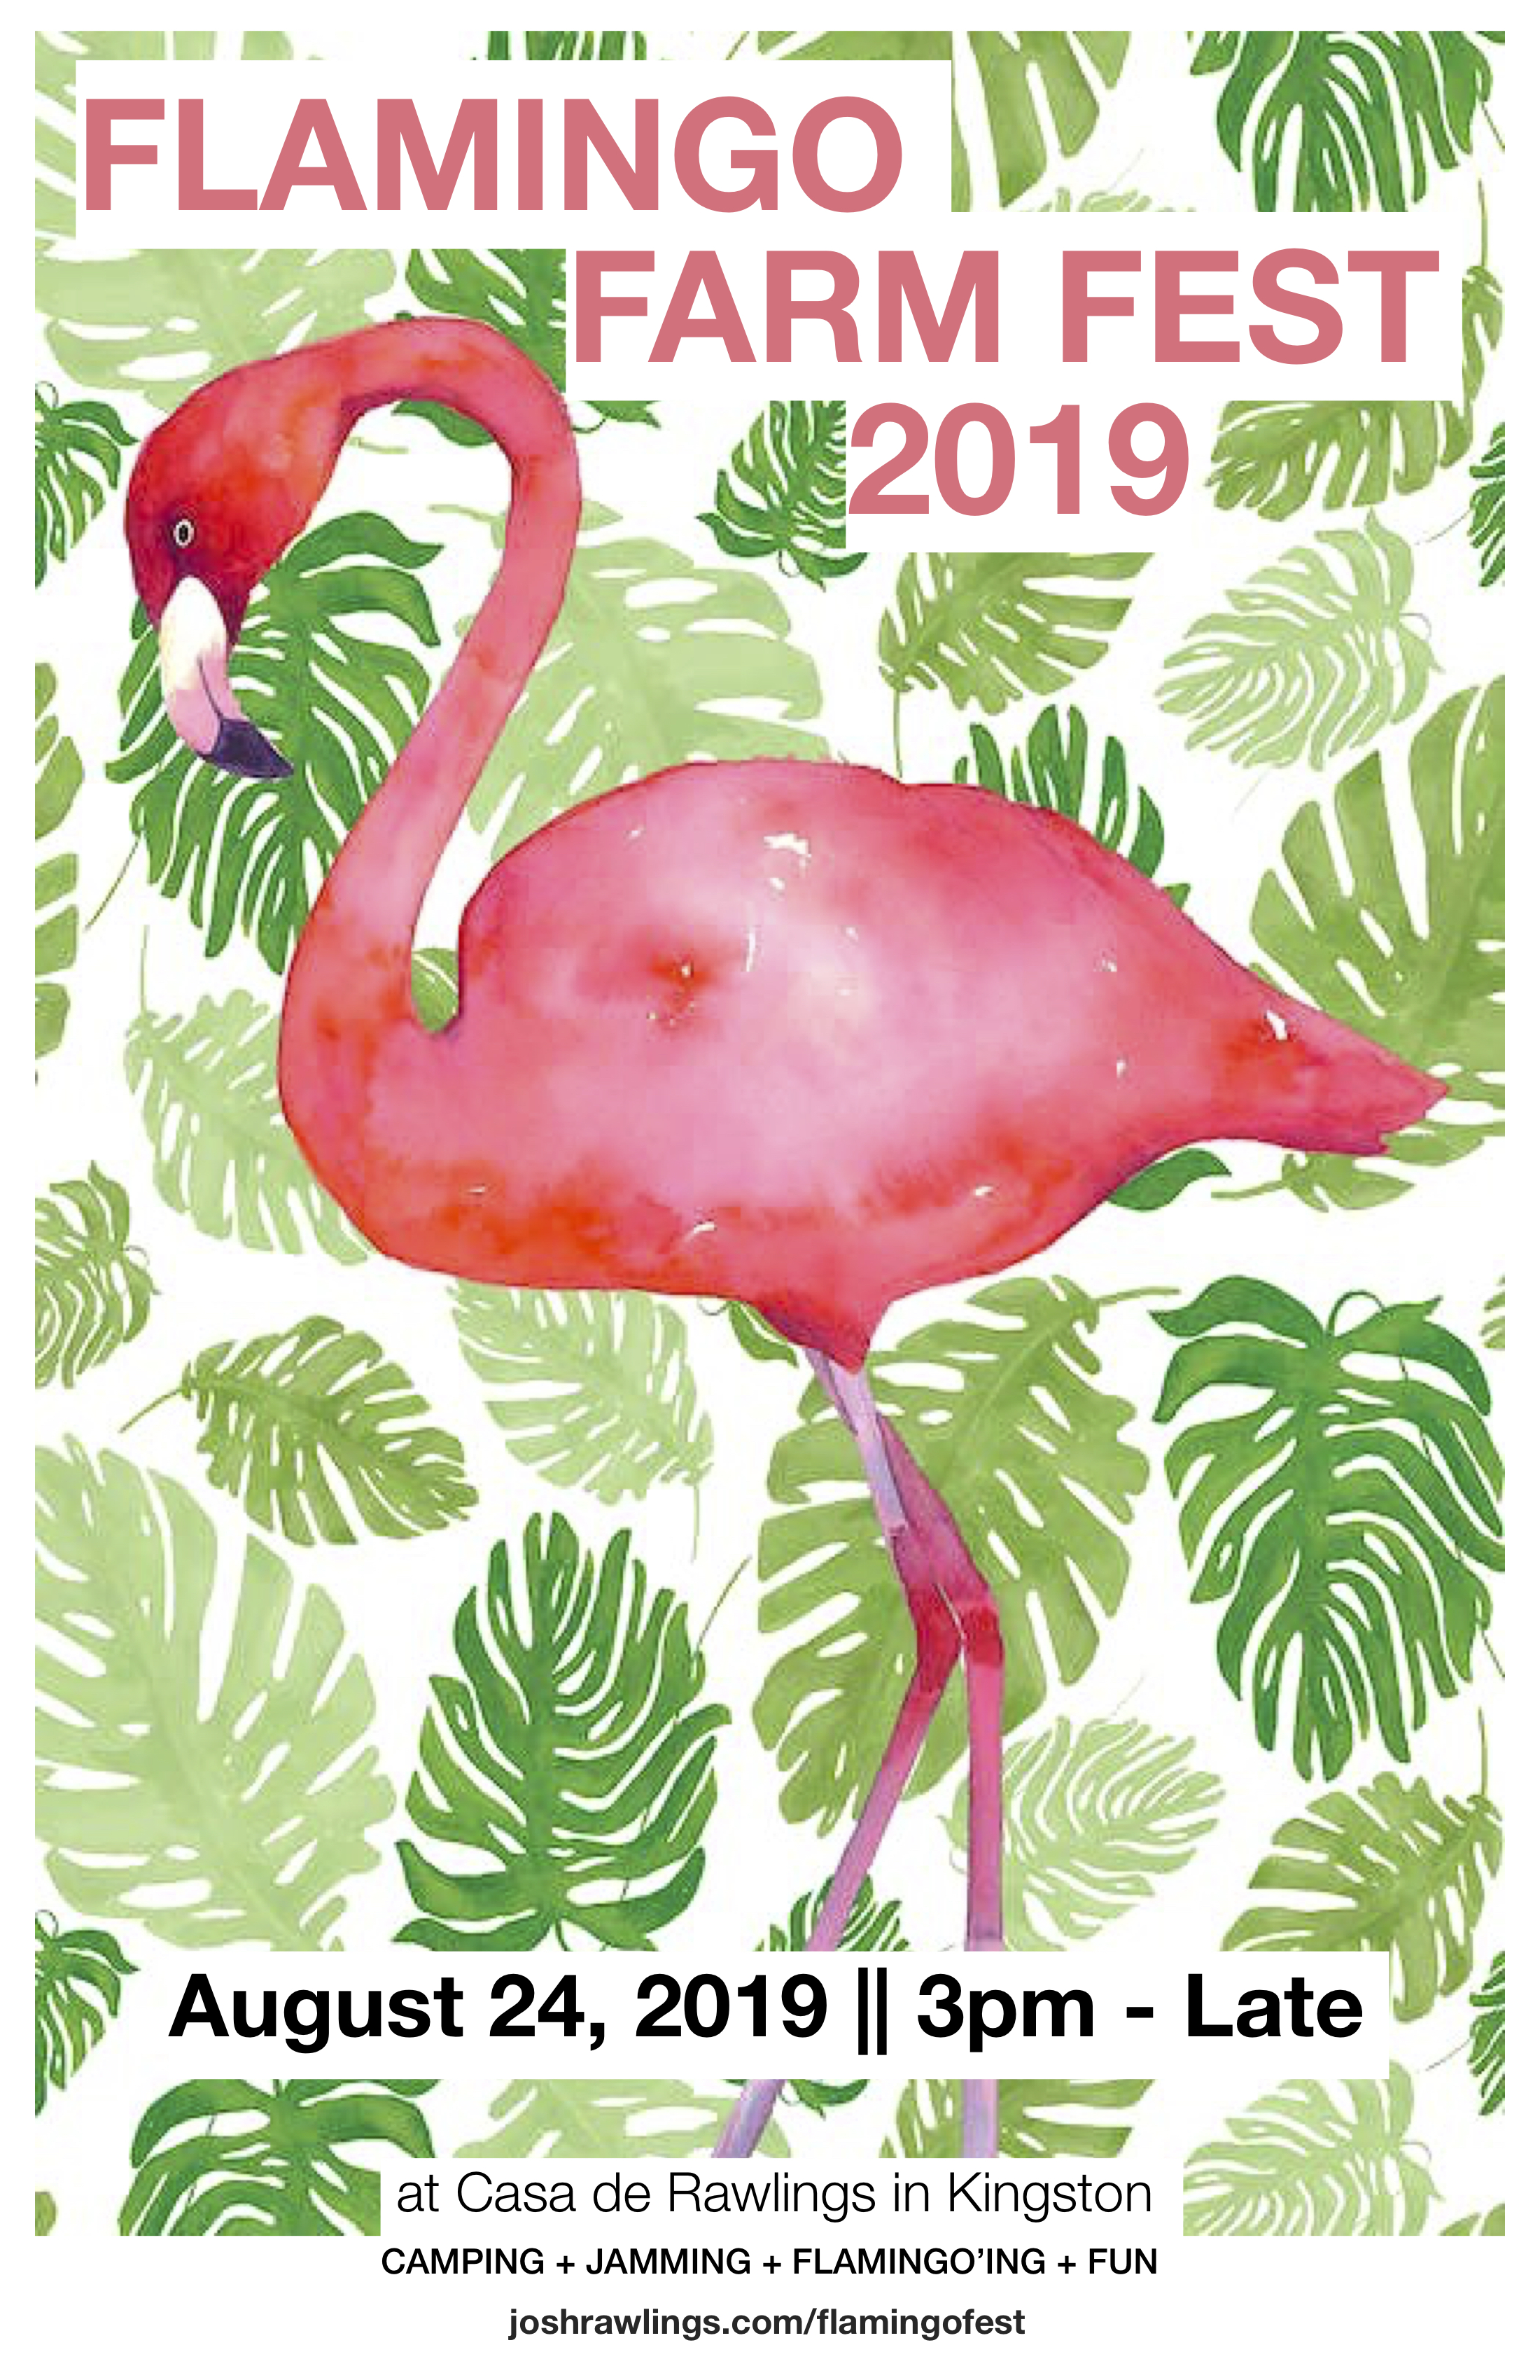 Flamingo Farm Fest 2019 Poster